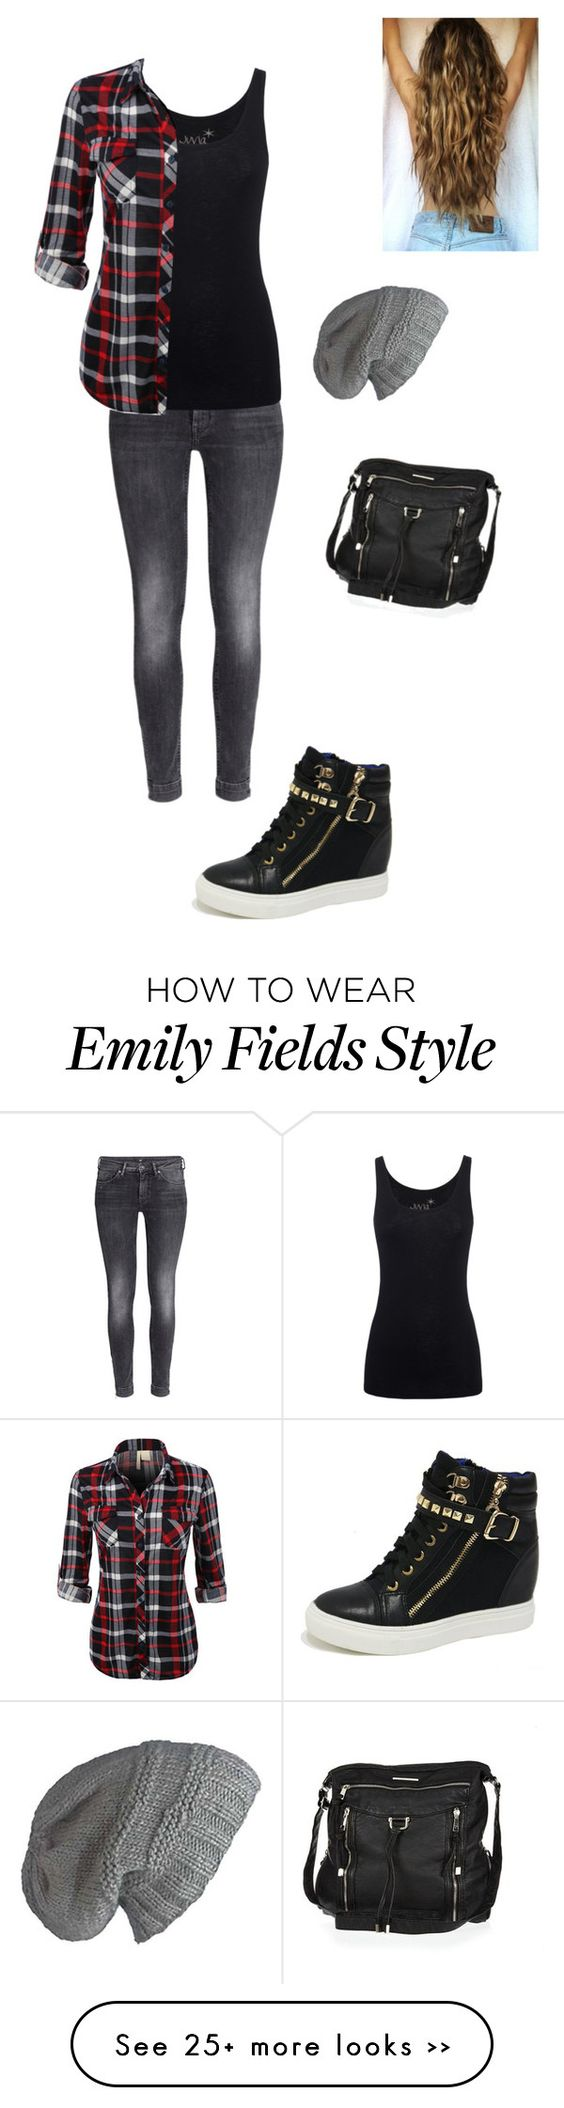 """""""Emily Fields"""" by grunge3003 on Polyvore"""